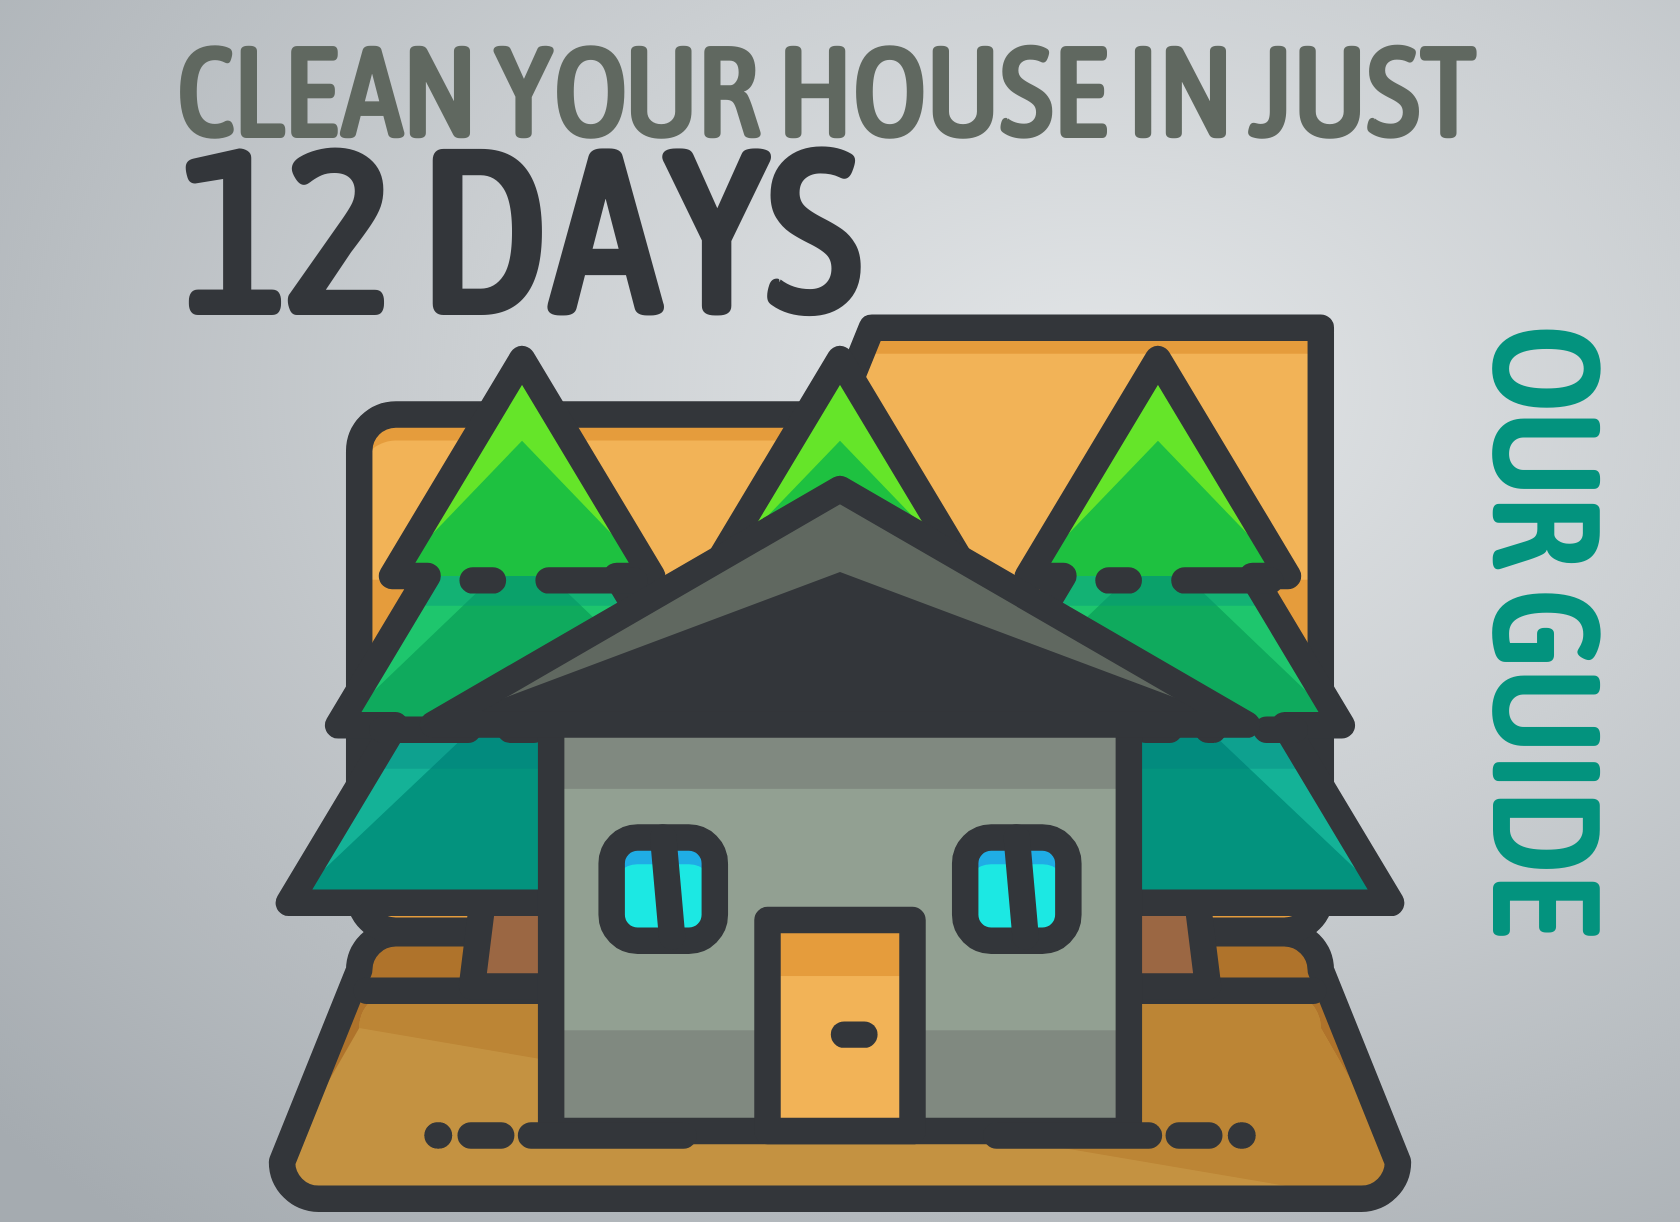 How to clean your whole house in just 12 days